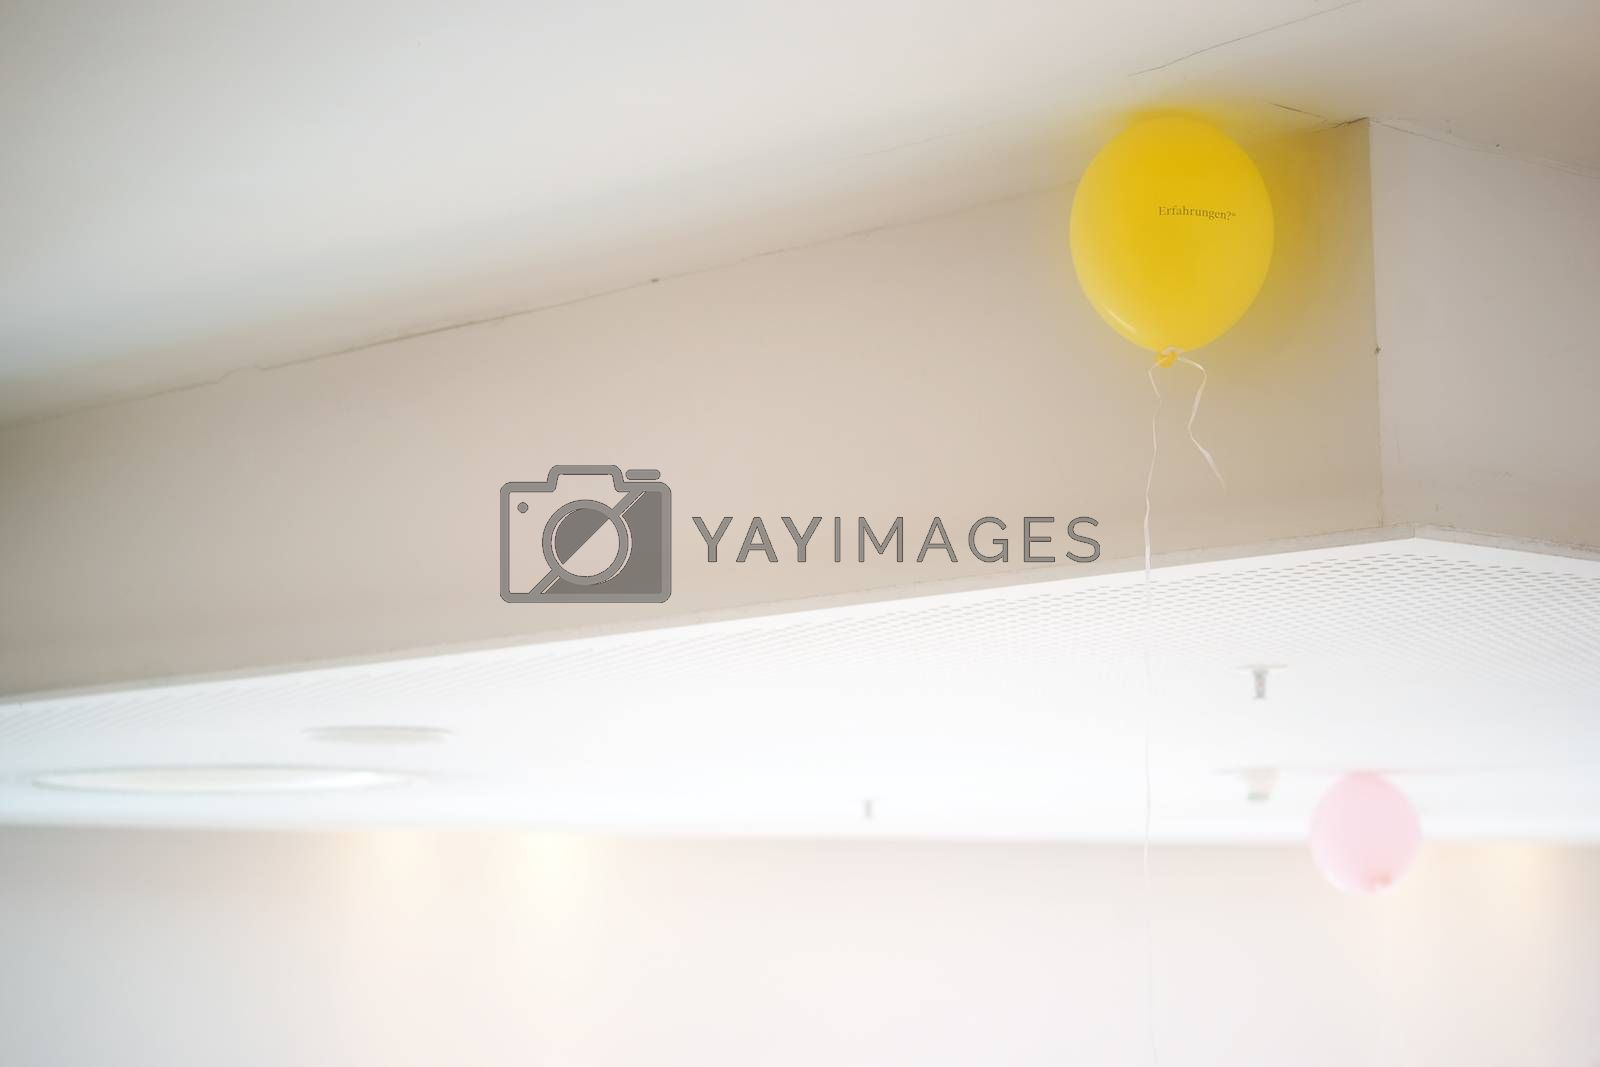 Two balloons on a ceiling with plates and panels and a sprinkler system.